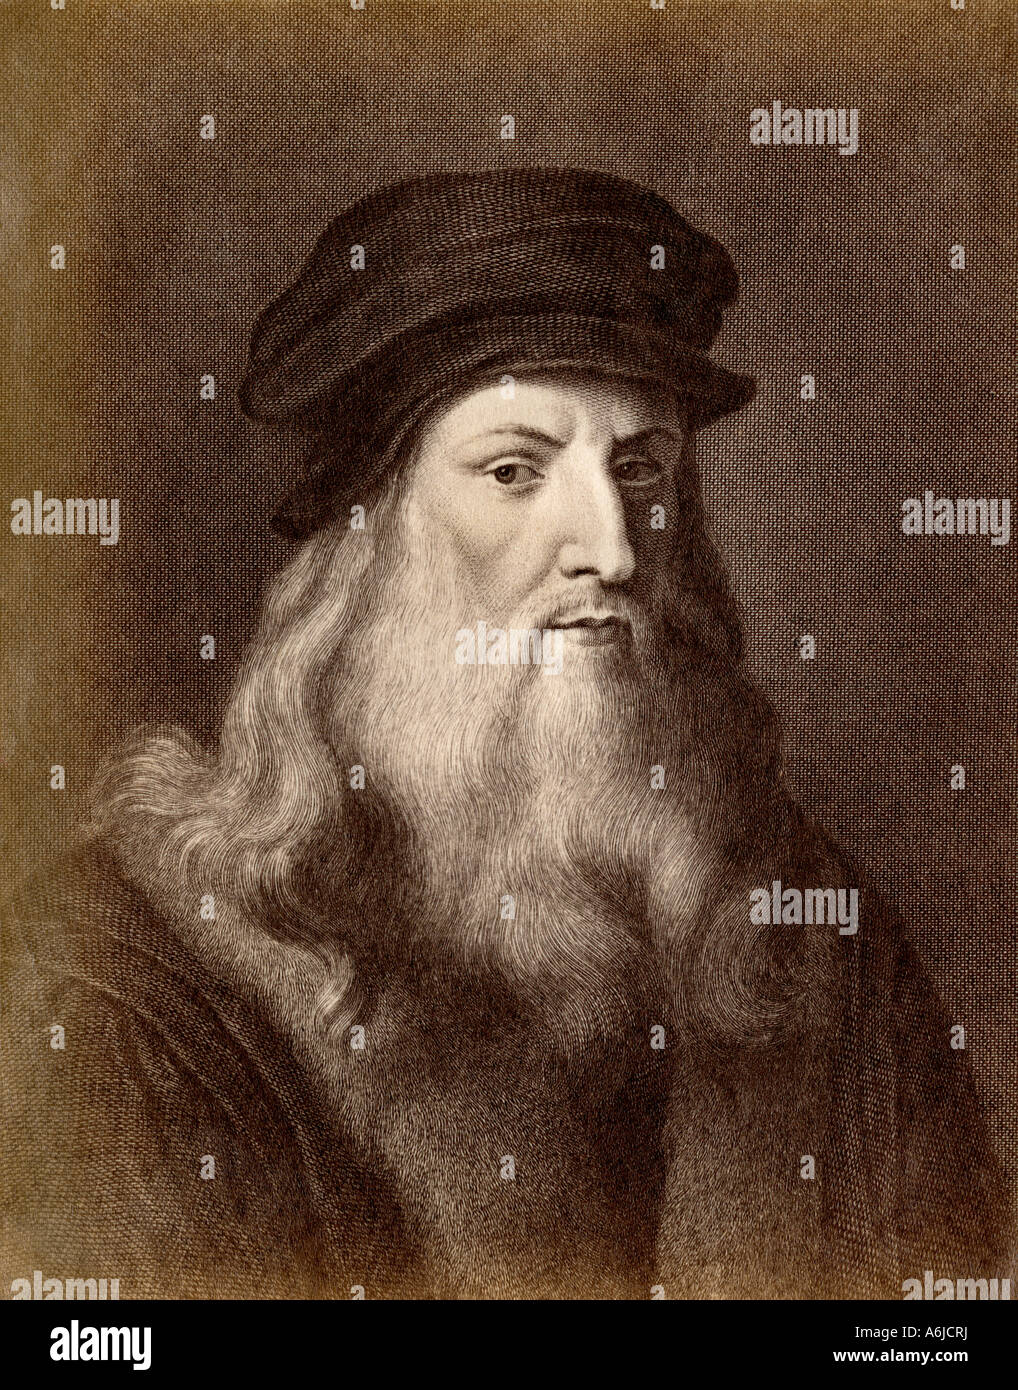 Leonardo da Vinci. Photograph of an illustration - Stock Image